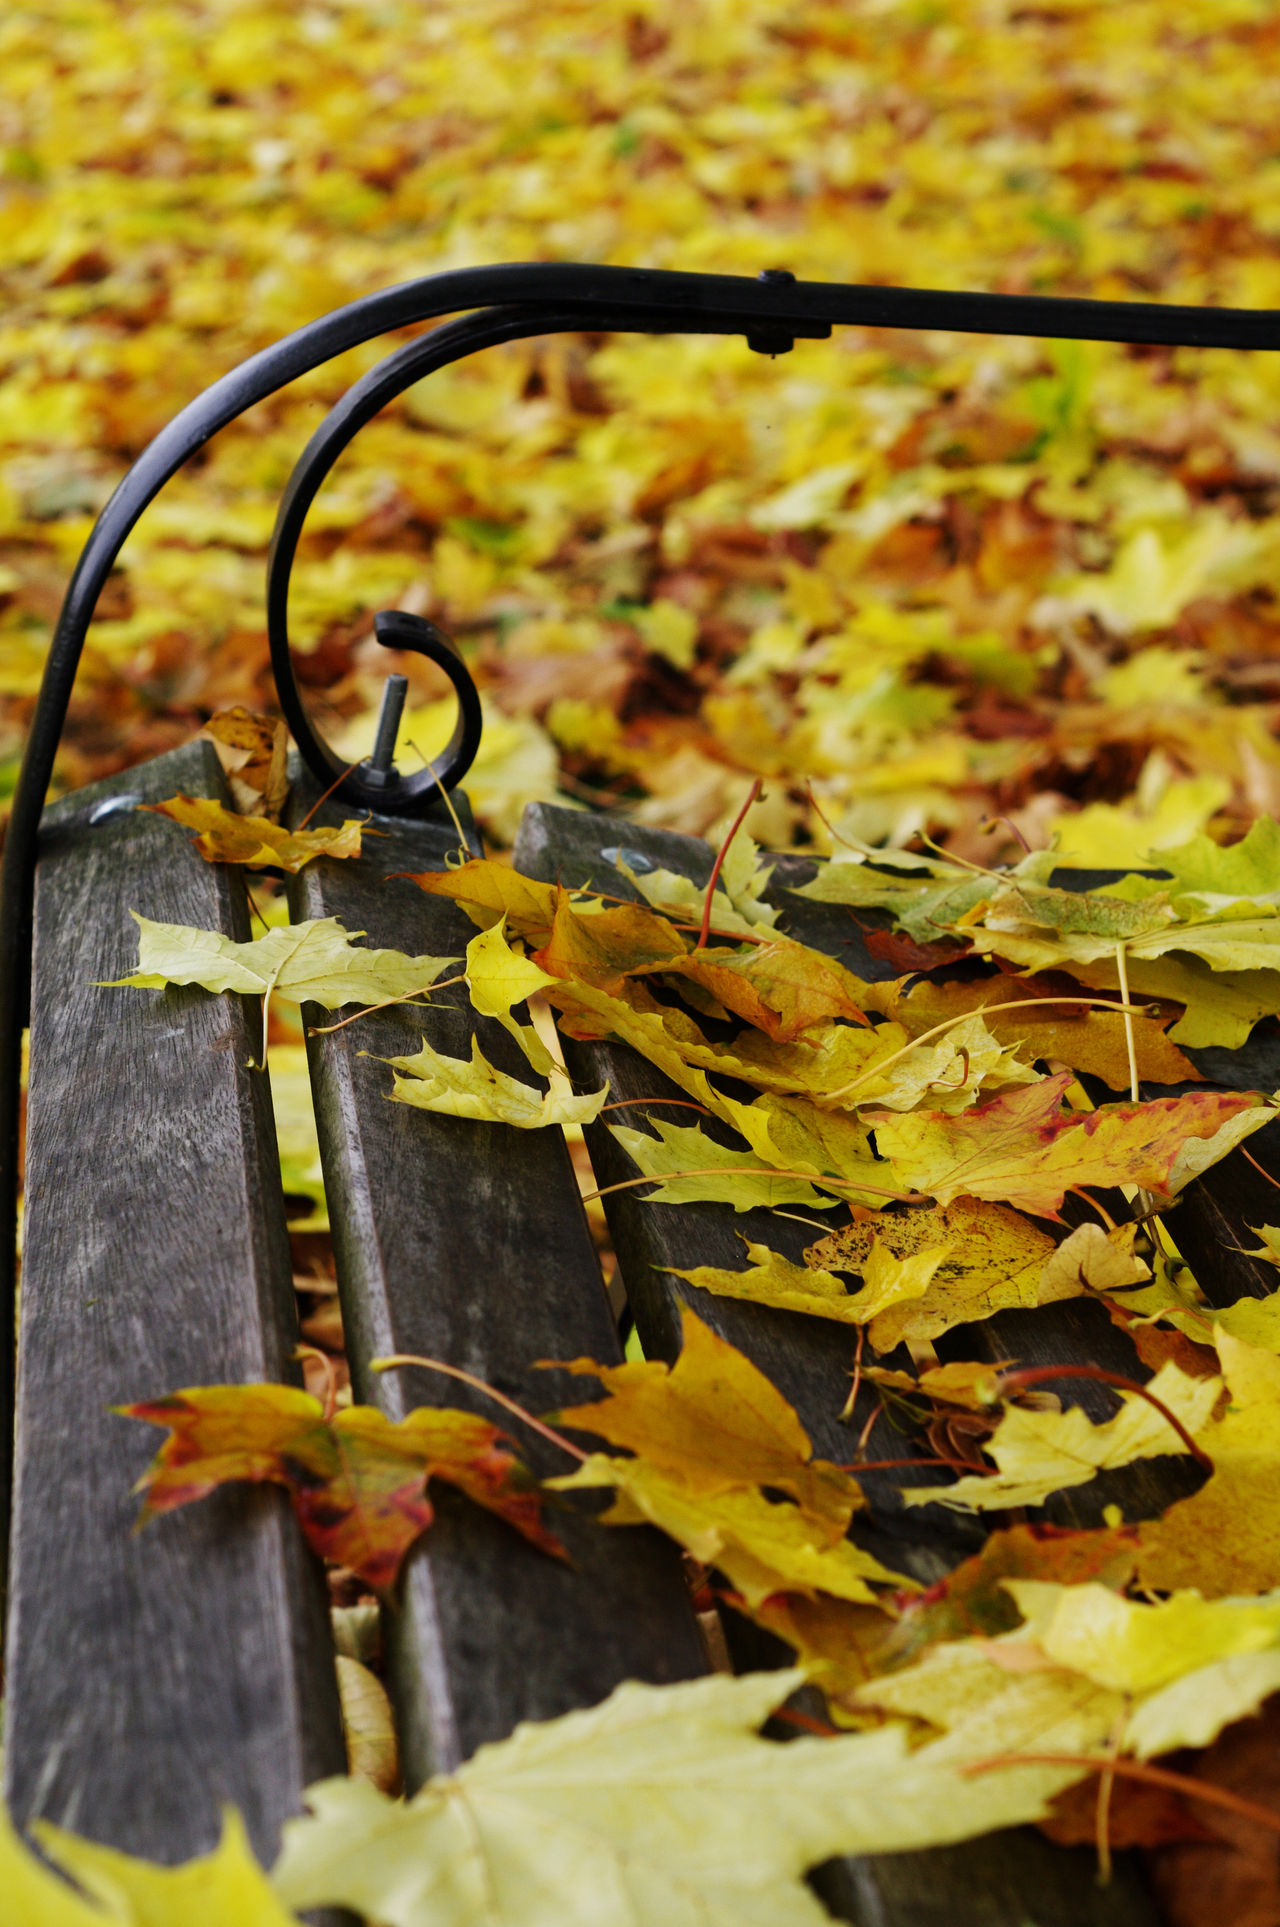 Autumn Bench Change Close-up Colours Of Autumn Day Fallen Leaves In The Park Leaf Maple Leaf Nature No People Outdoors Wooden Slats Wrought Iron Yellow Prime Lens St Nicholas Park, Warwick, UK